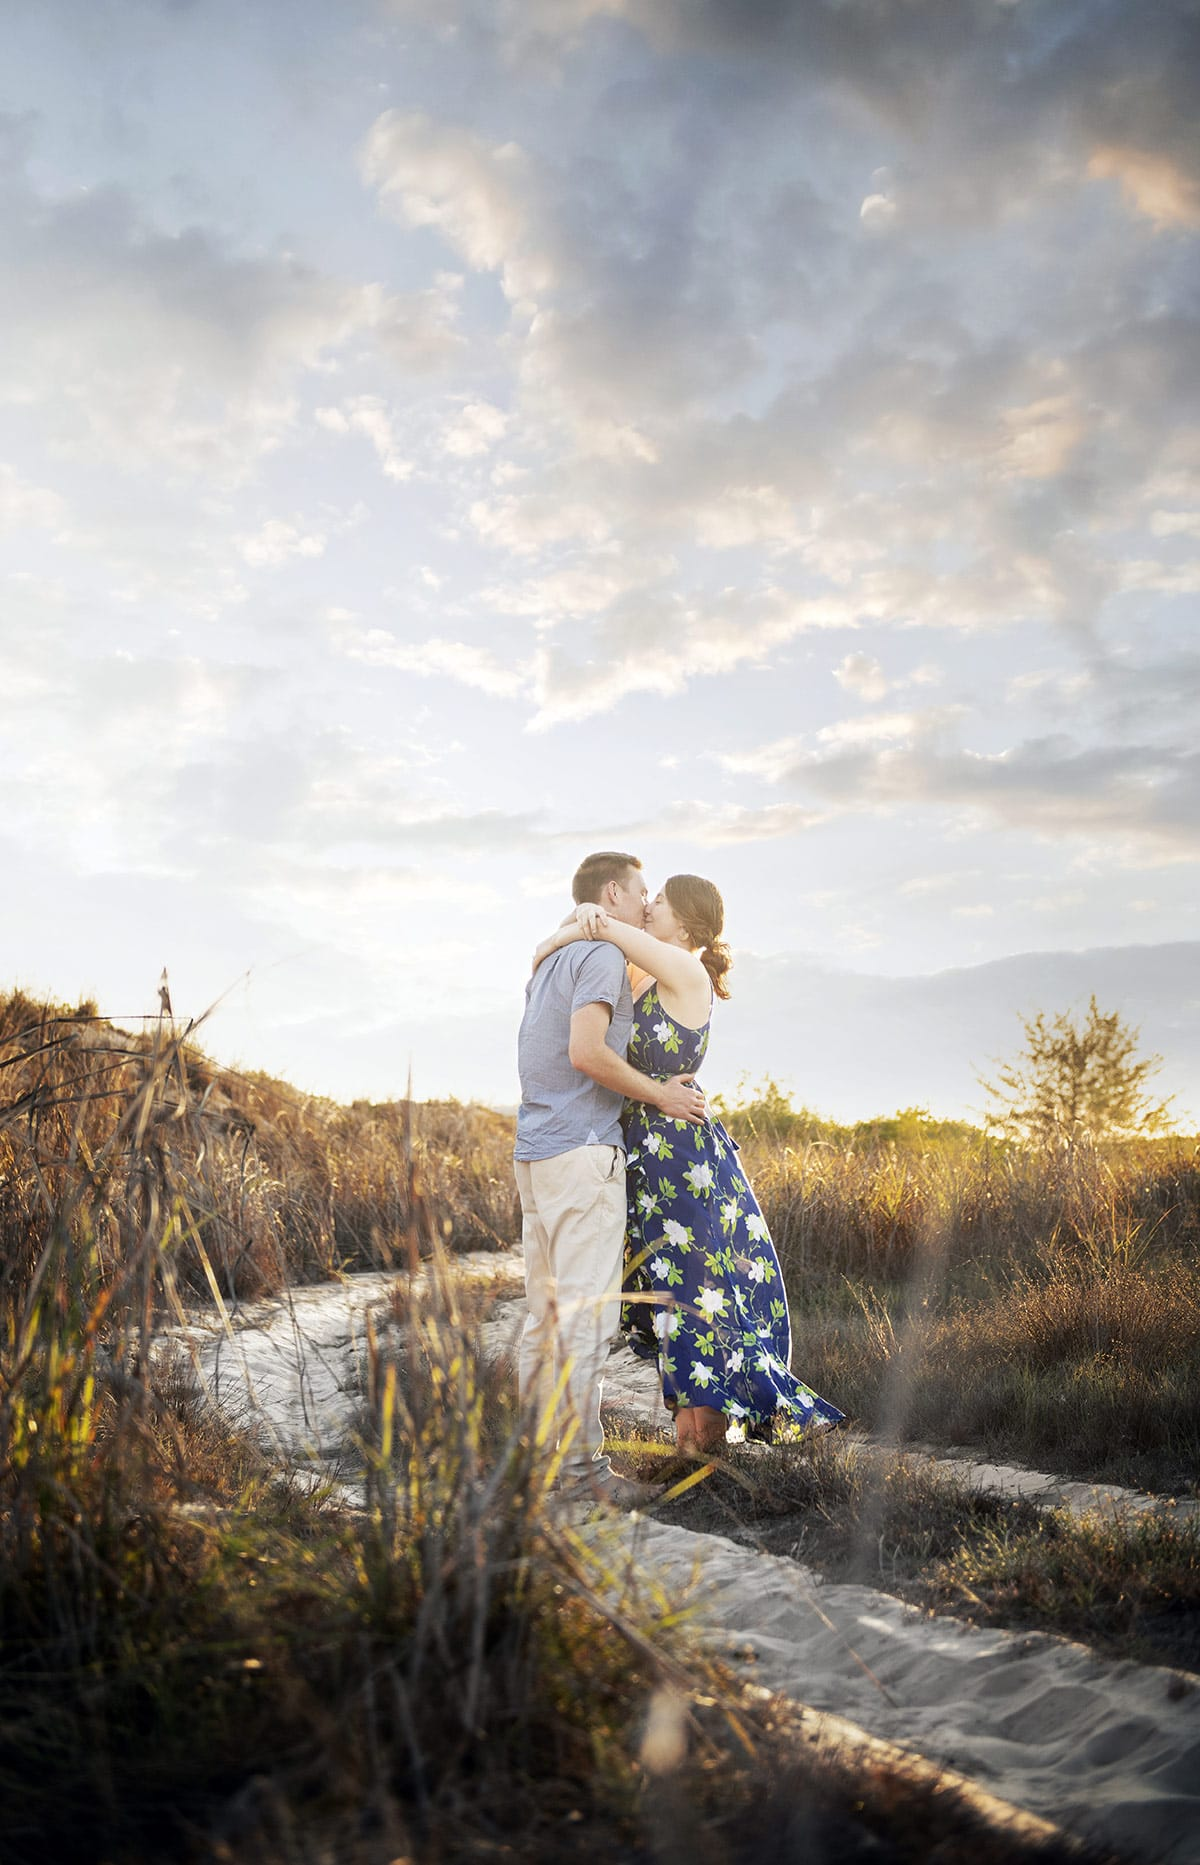 Adelaide Photography - Portraiture, Couples & Engagement 1